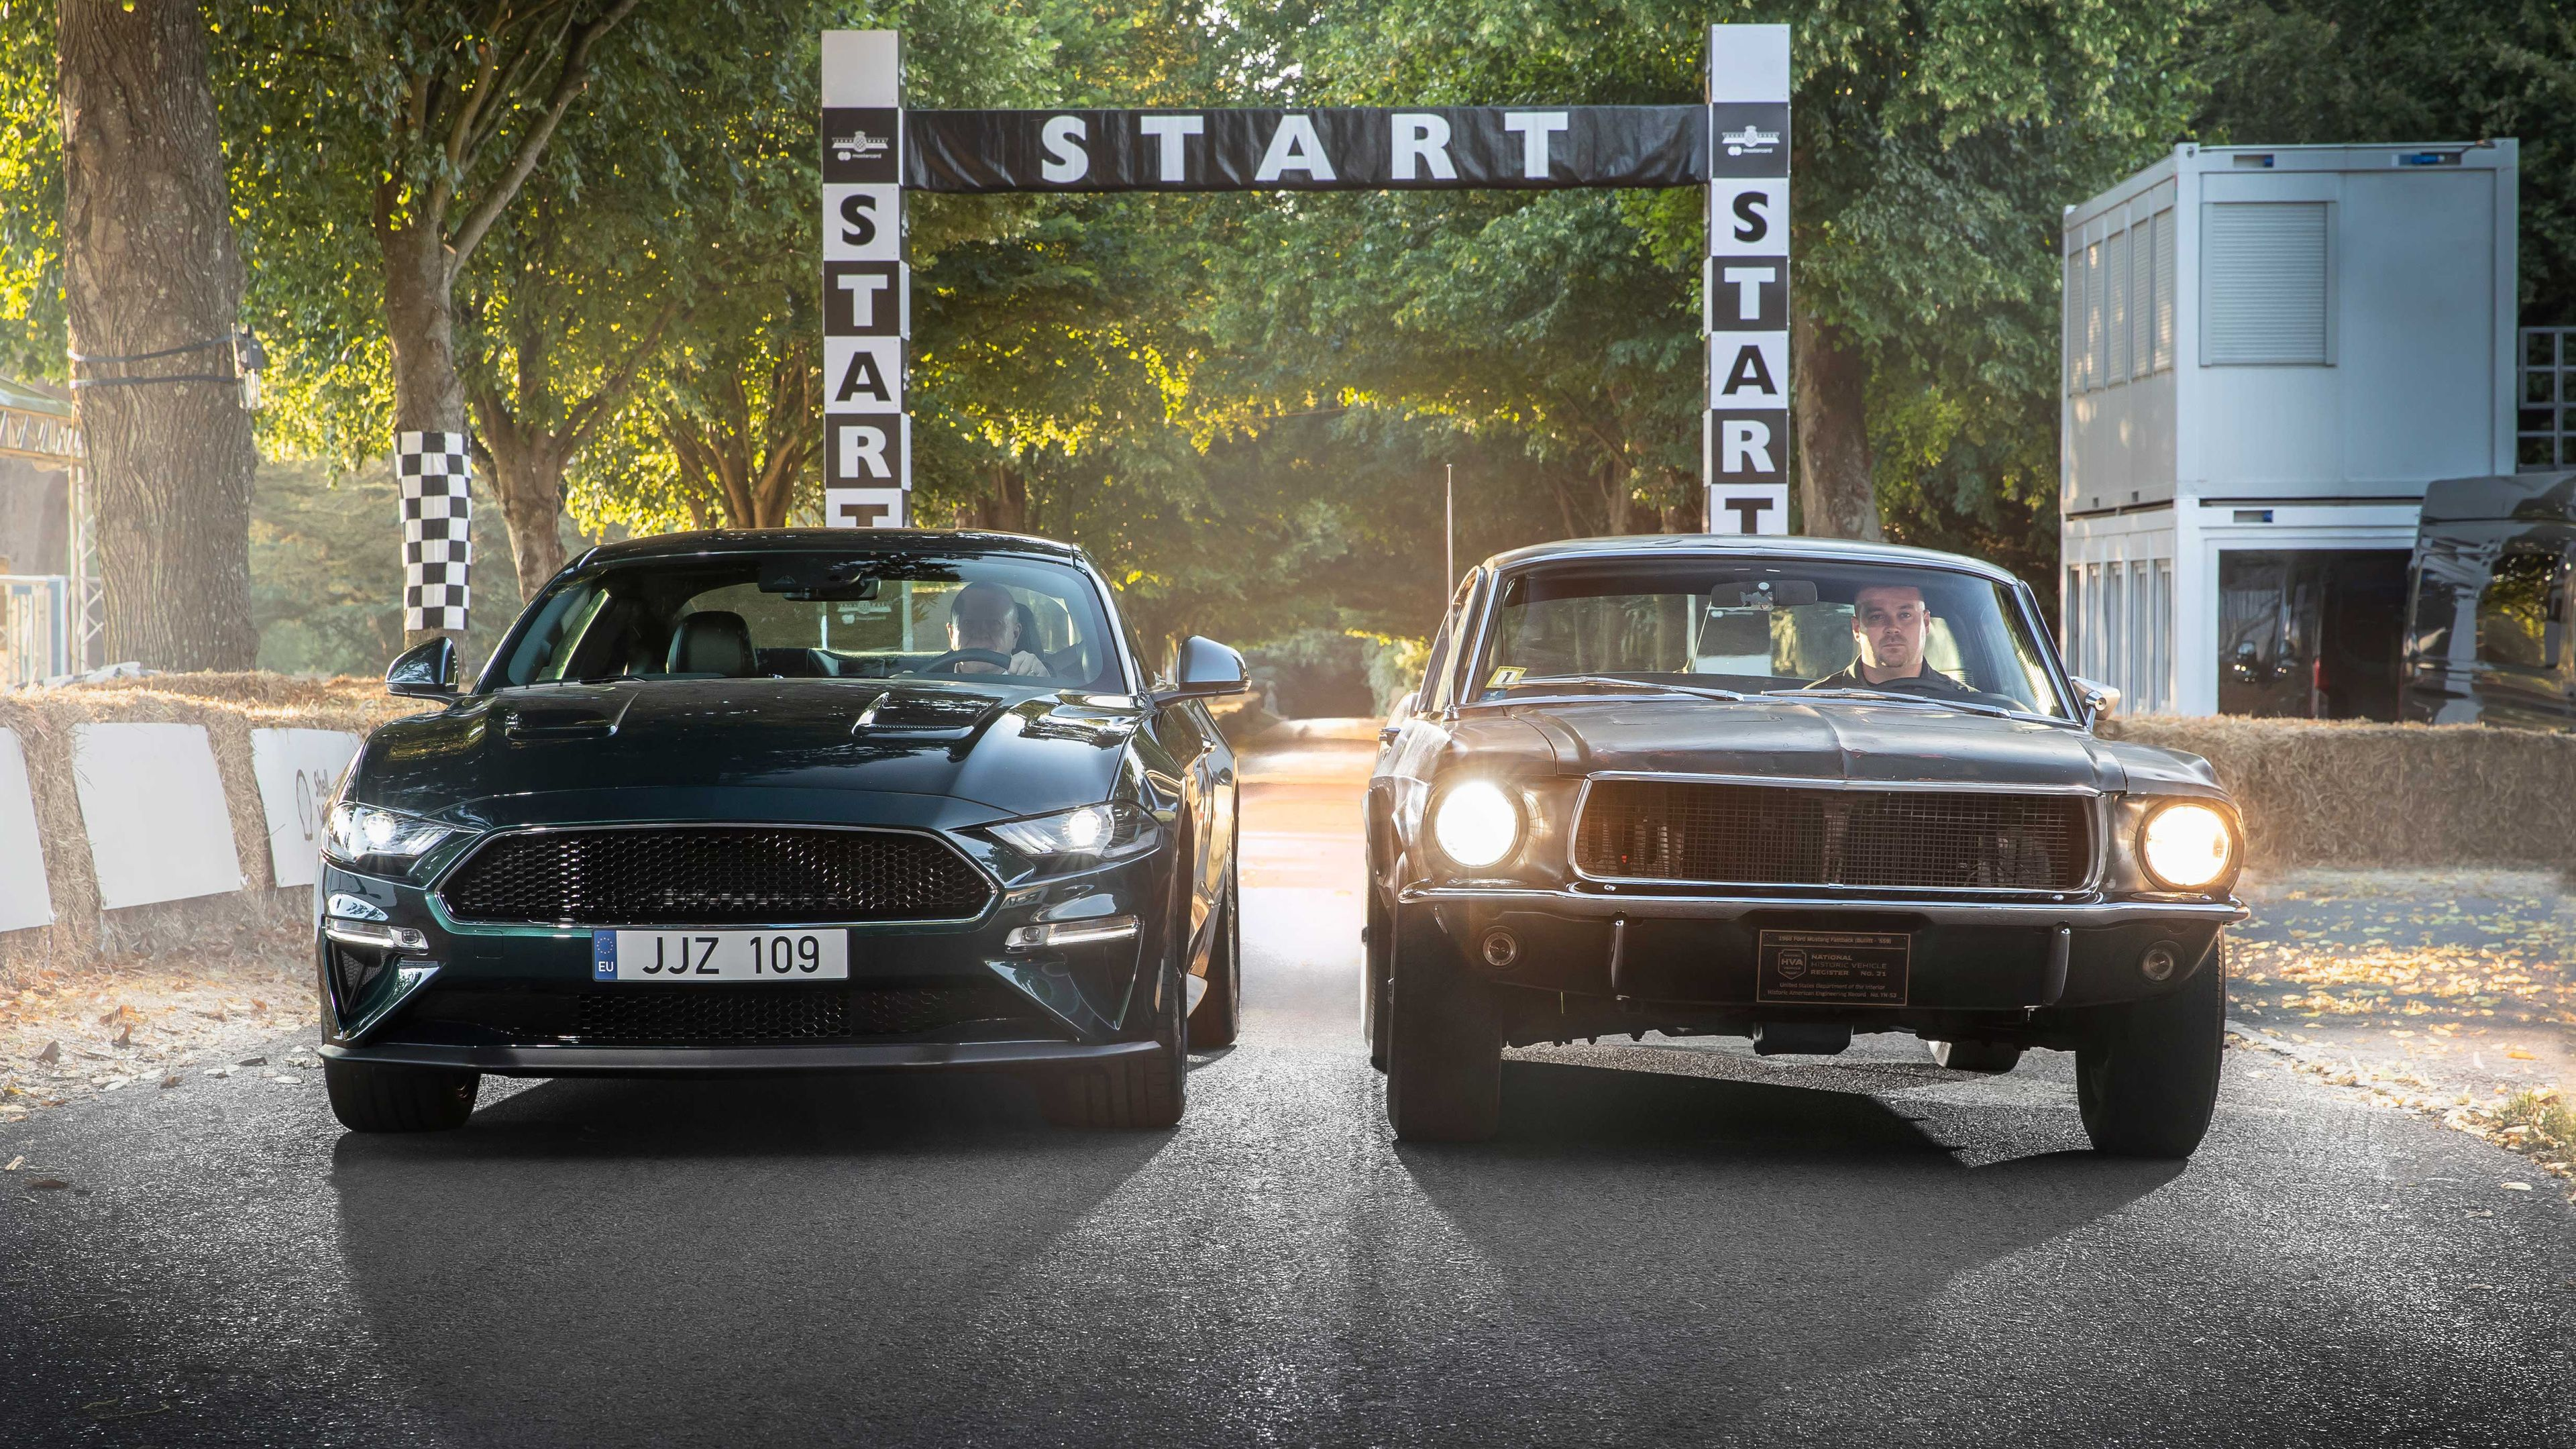 Wallpaper 4k Ford Mustang Bullitt And Gt Fastback 2018 Cars